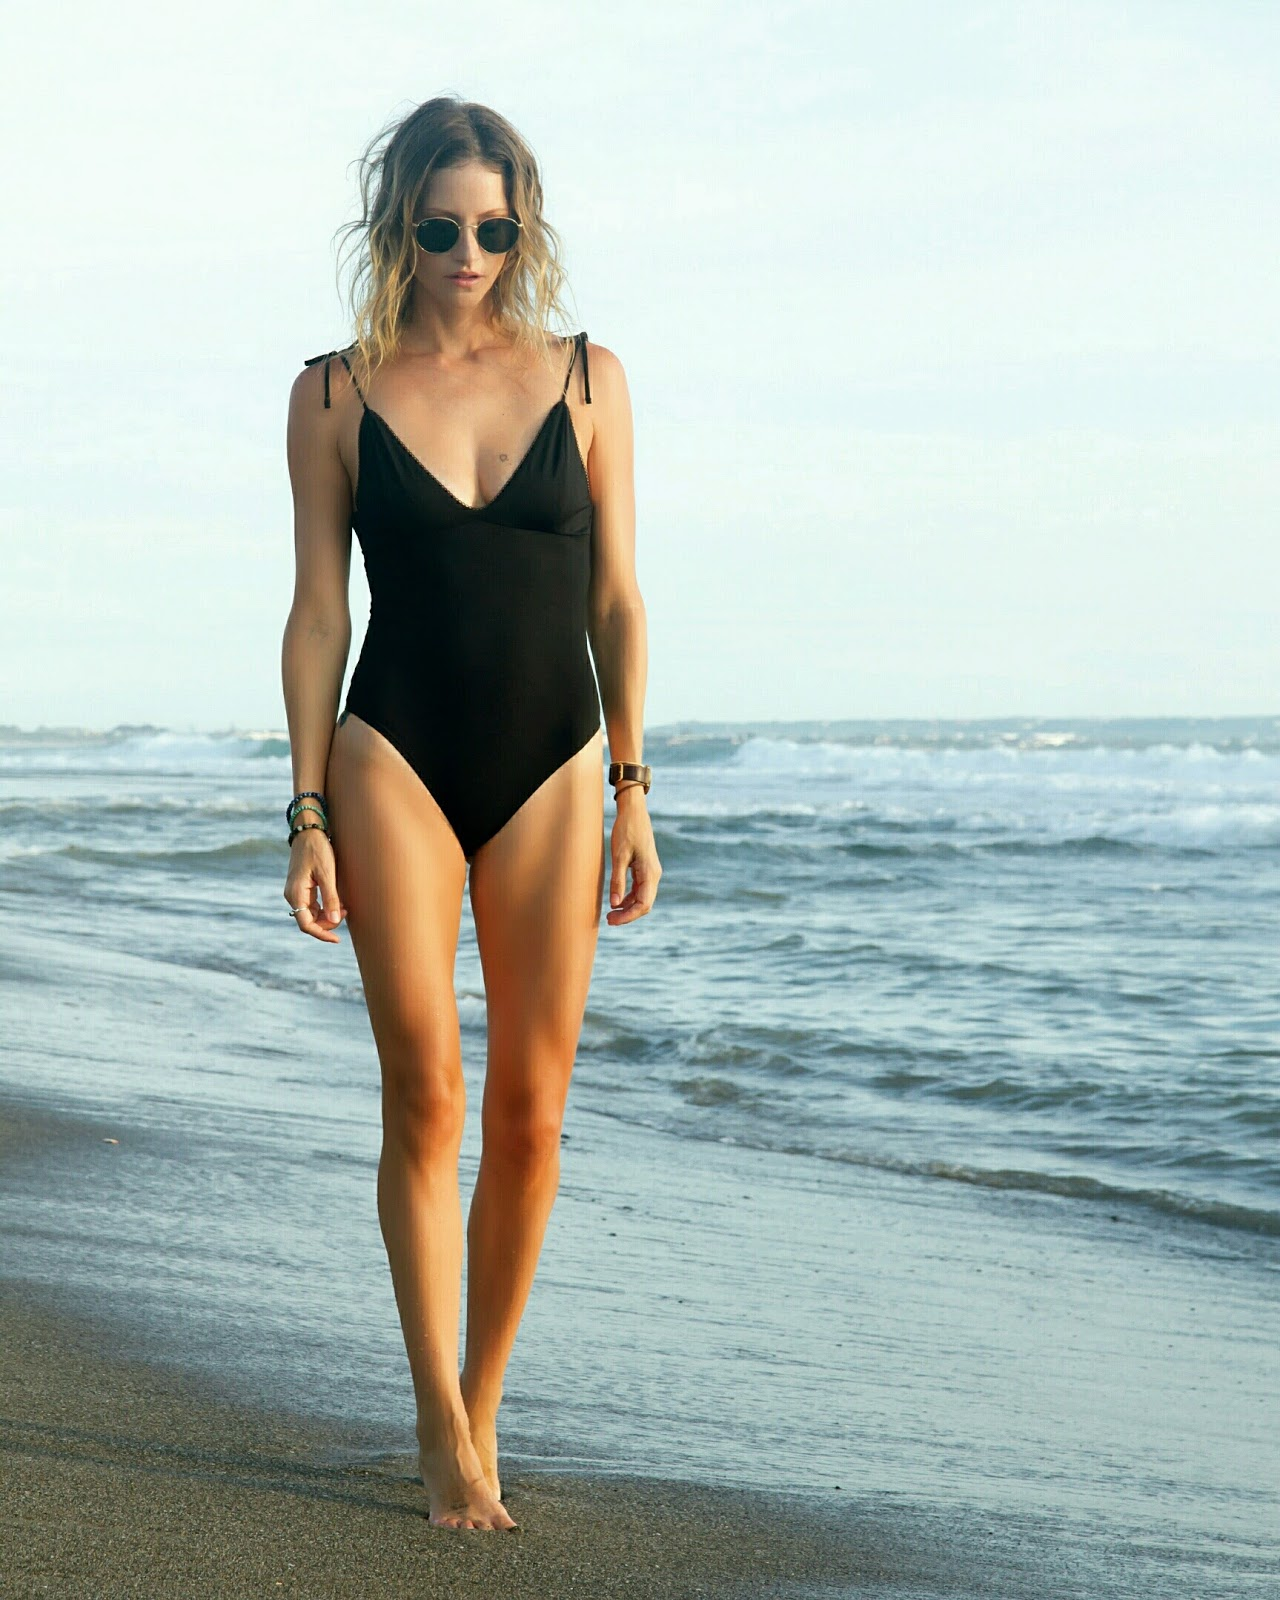 Fashion and travel blogger, Alison Hutchinson, in a black one-piece swimsuit at the beach in Bali